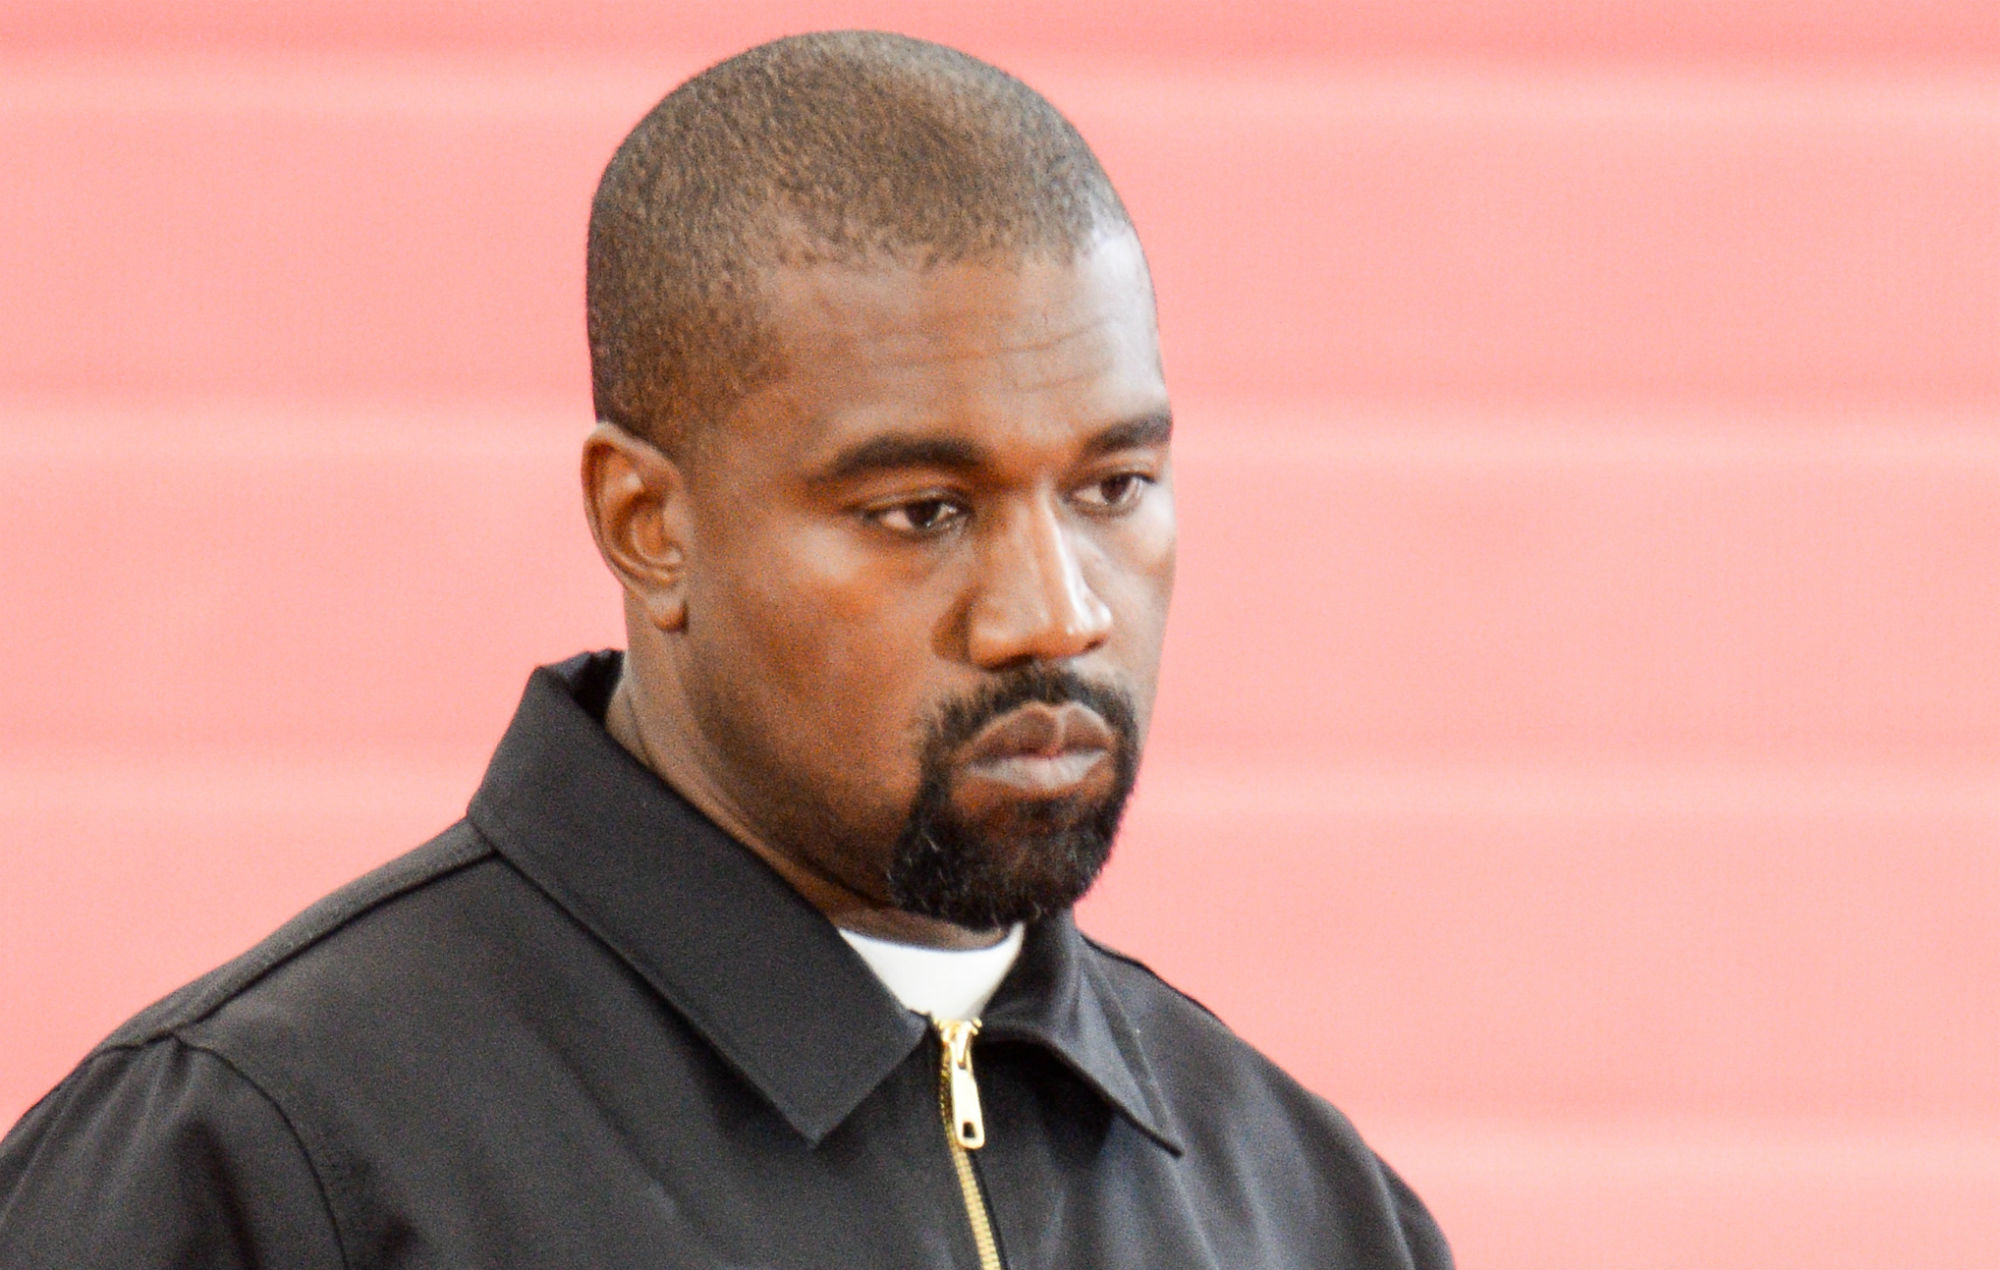 Kanye West reportedly set to release 'Jesus Is King' later this month